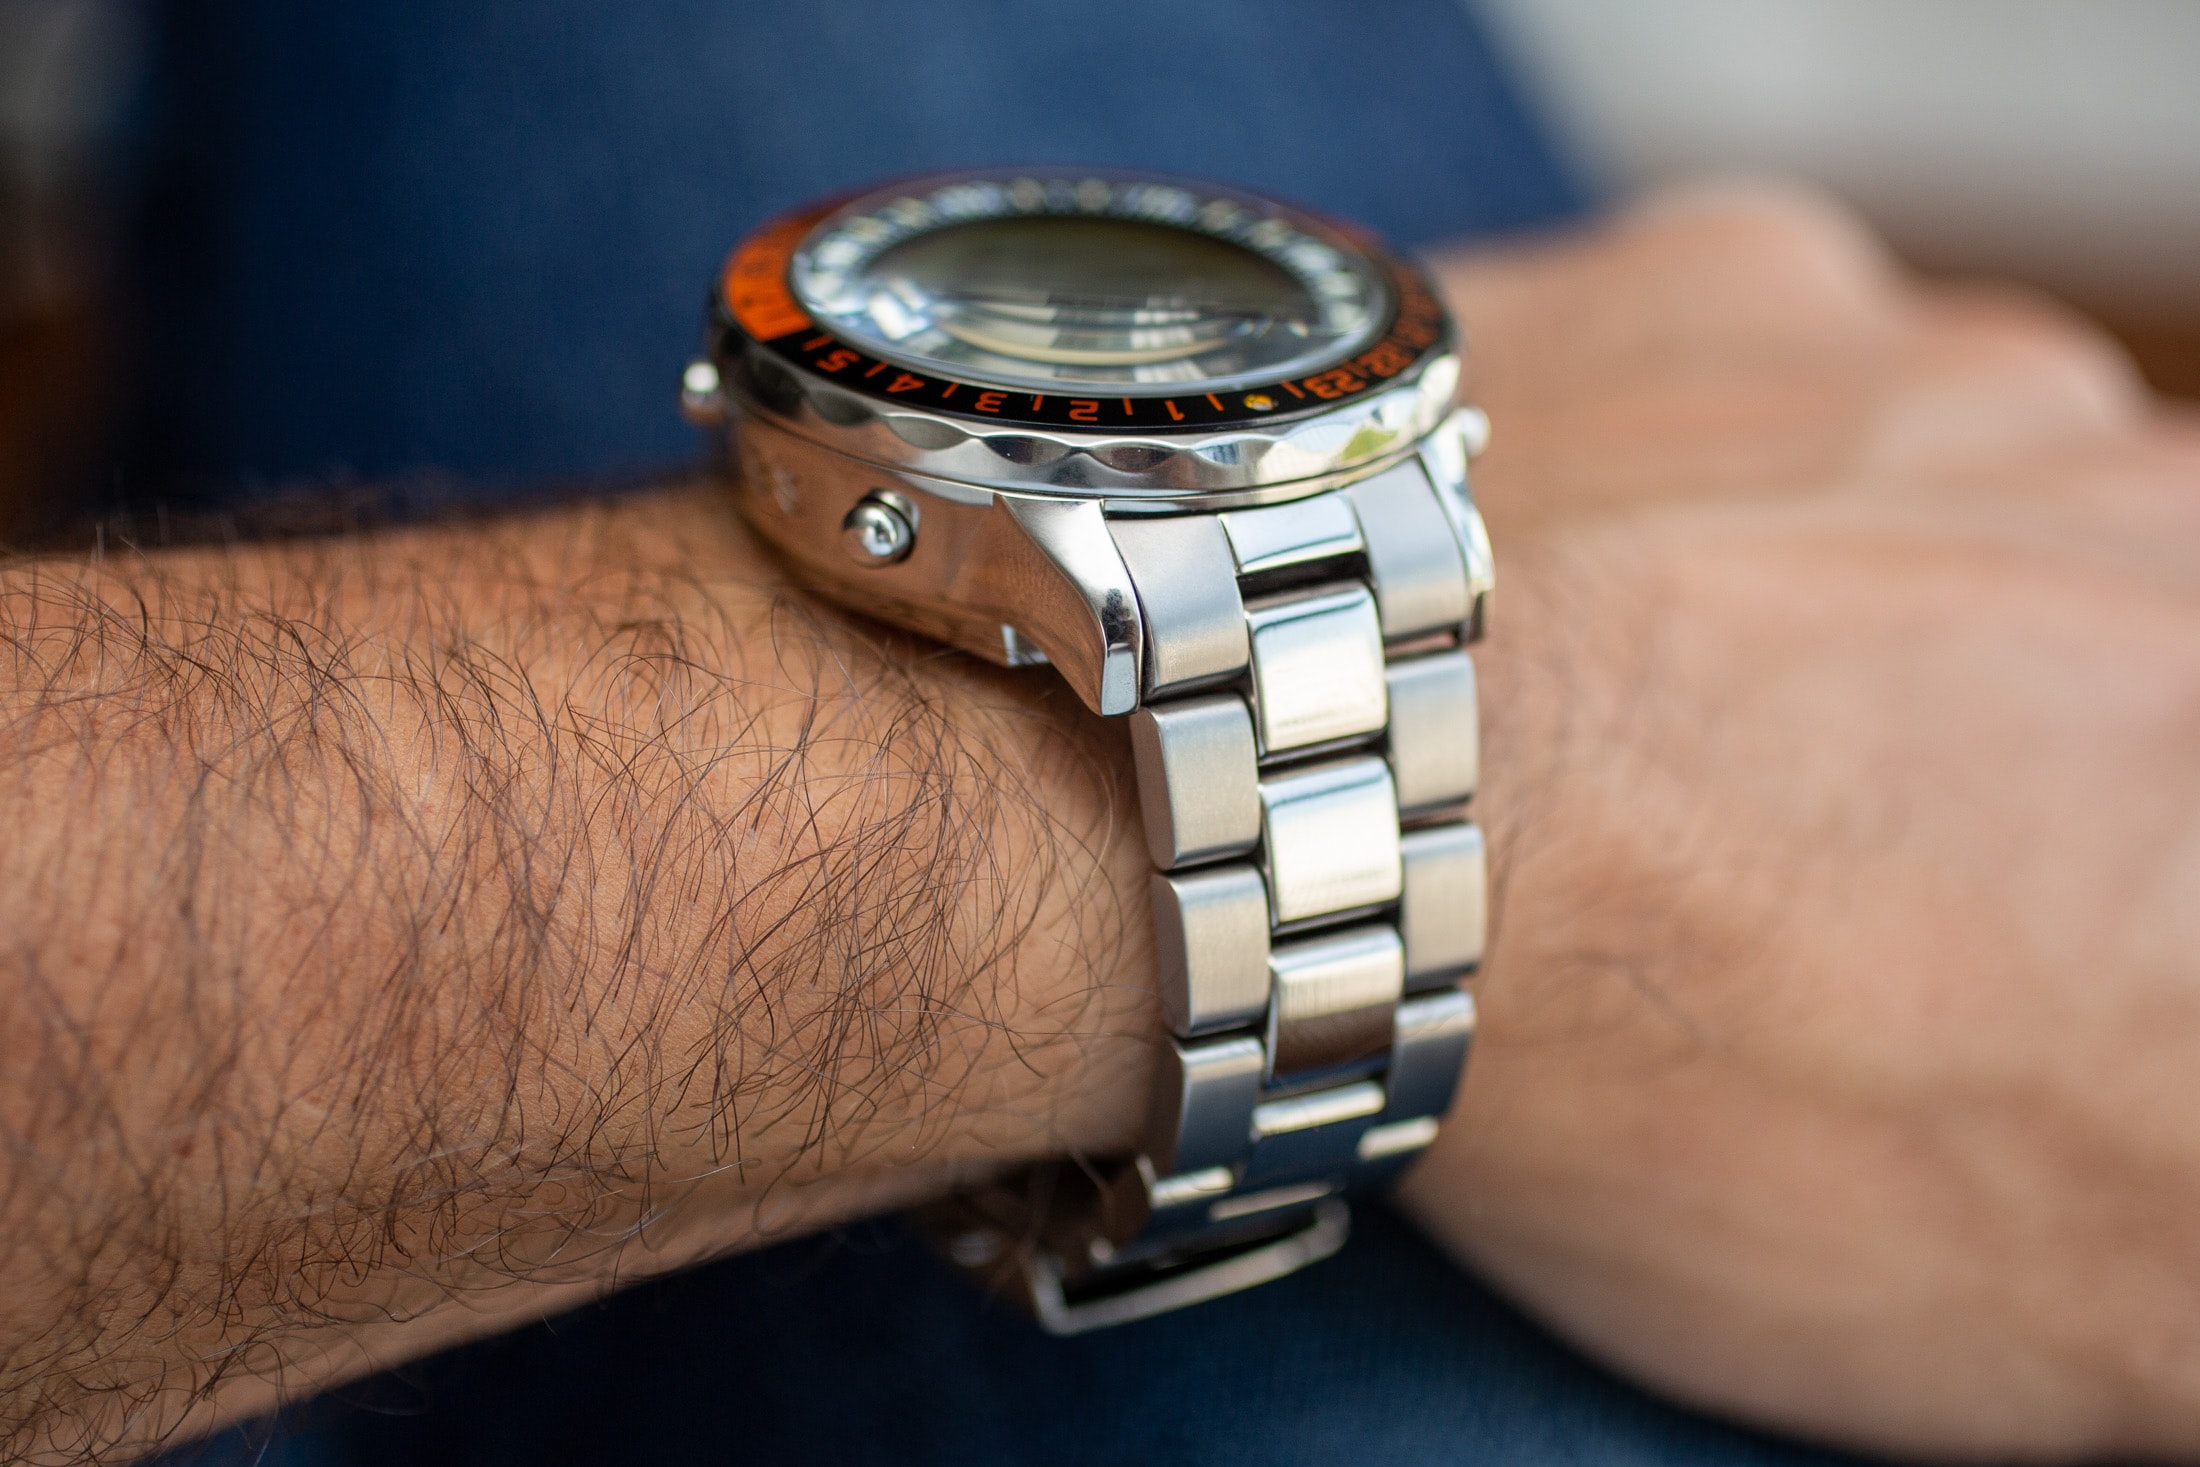 Hands-On: The Yes Equilibrium Yes Equilibrium 15